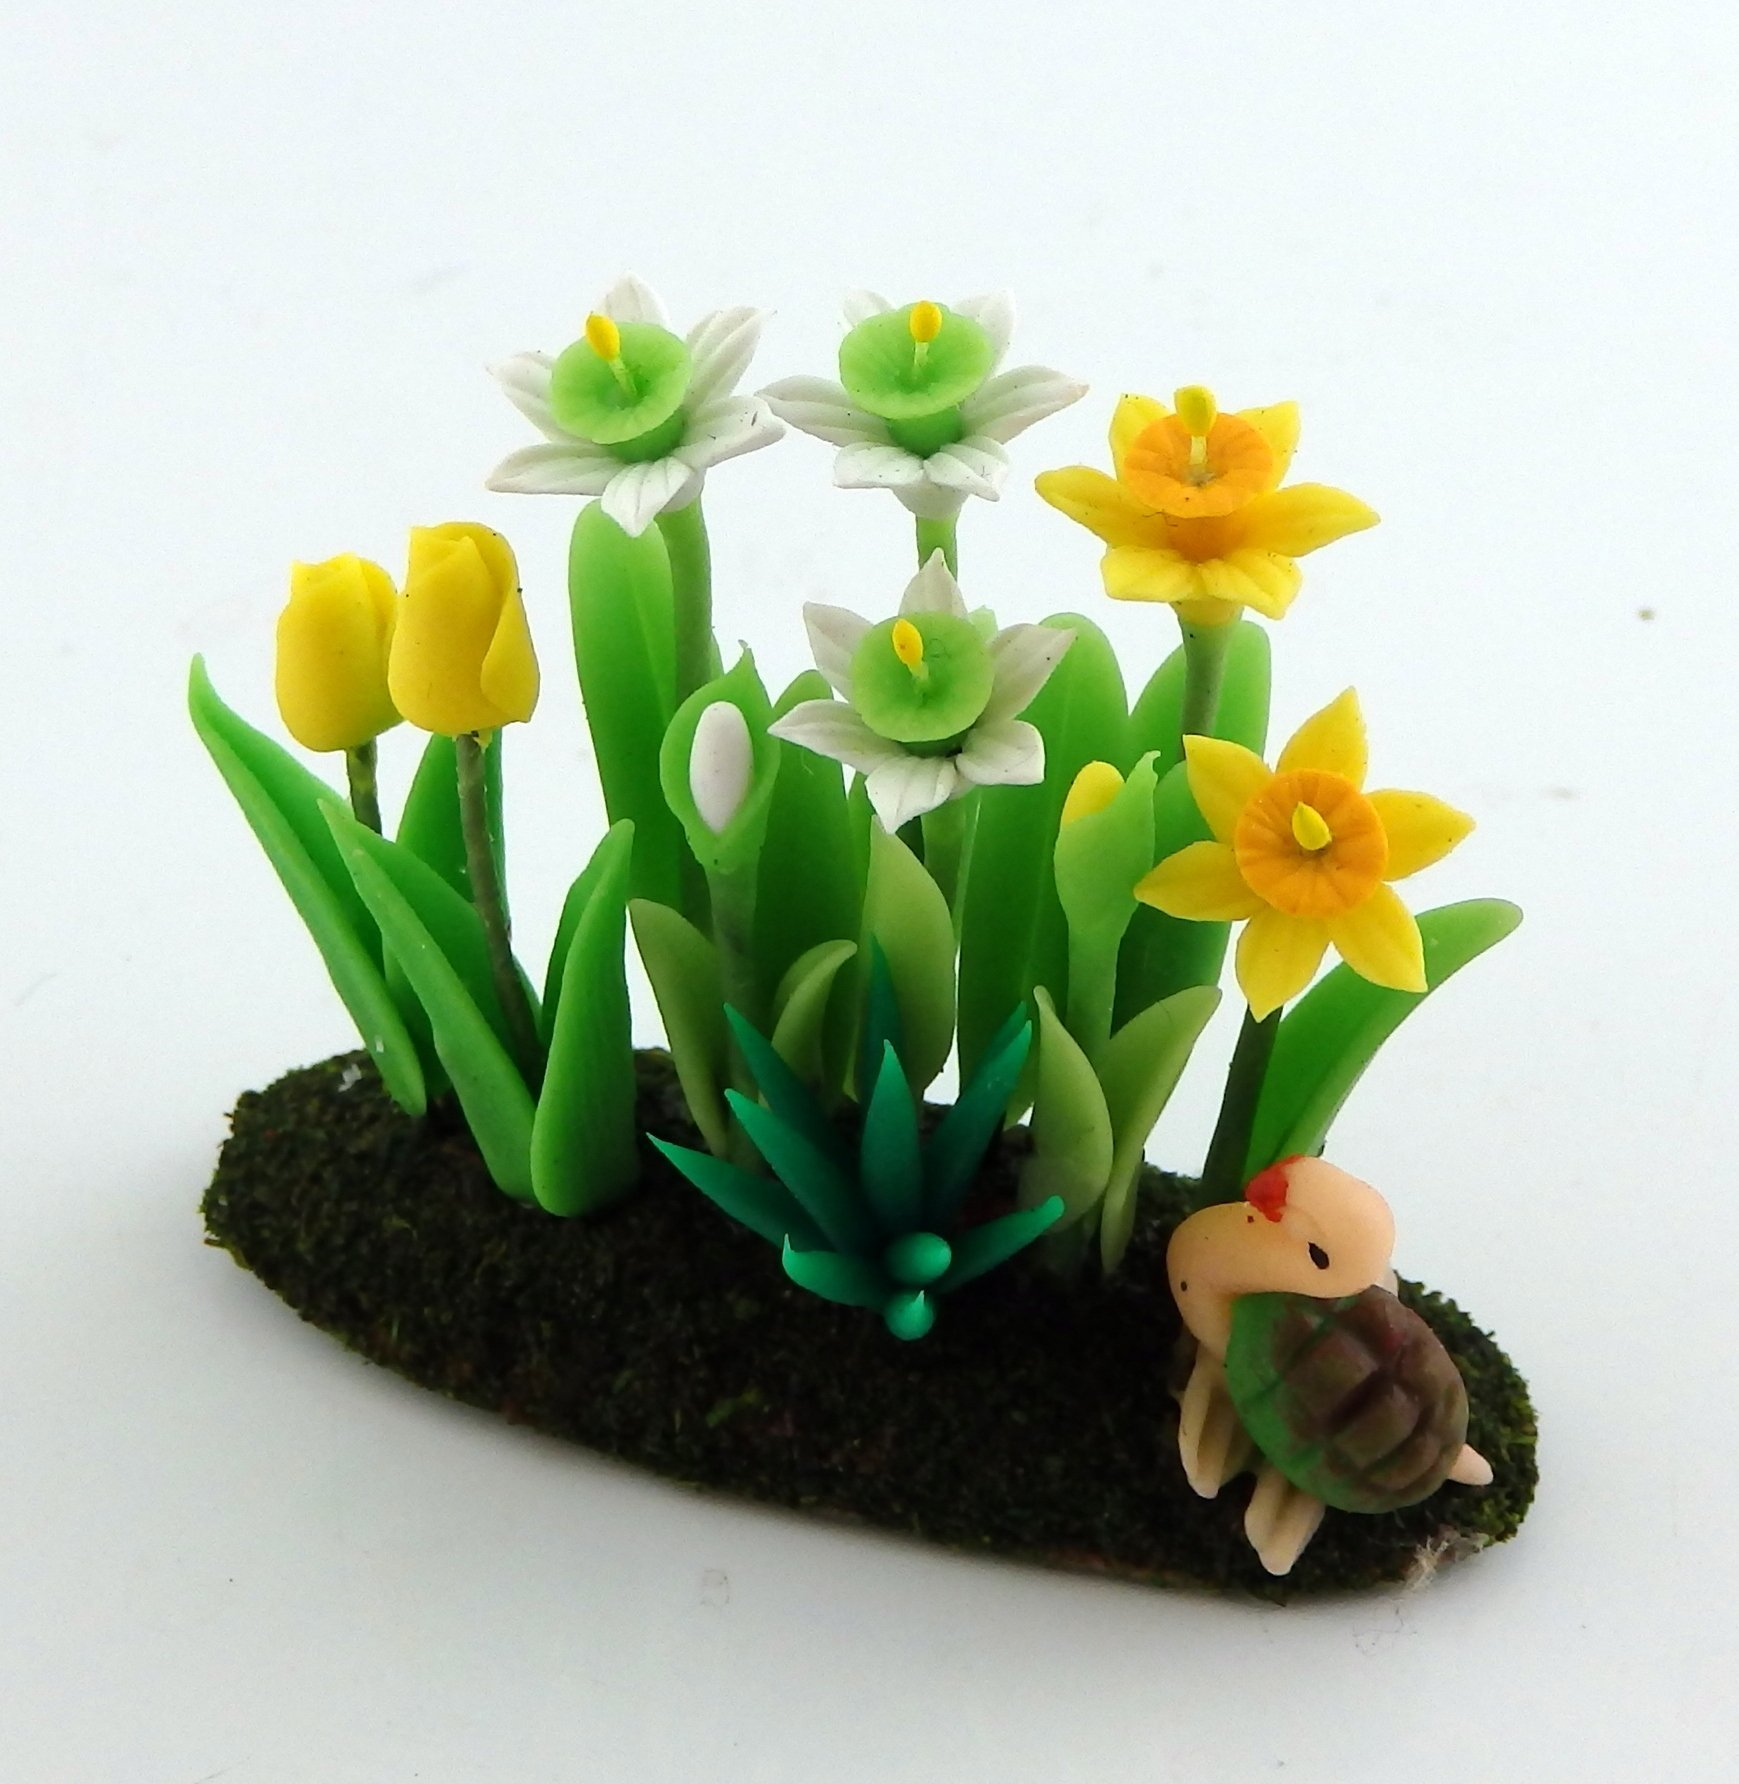 Melody Jane Dolls House 4 Daffodil Vases Decorative Miniature Ornament Accessory